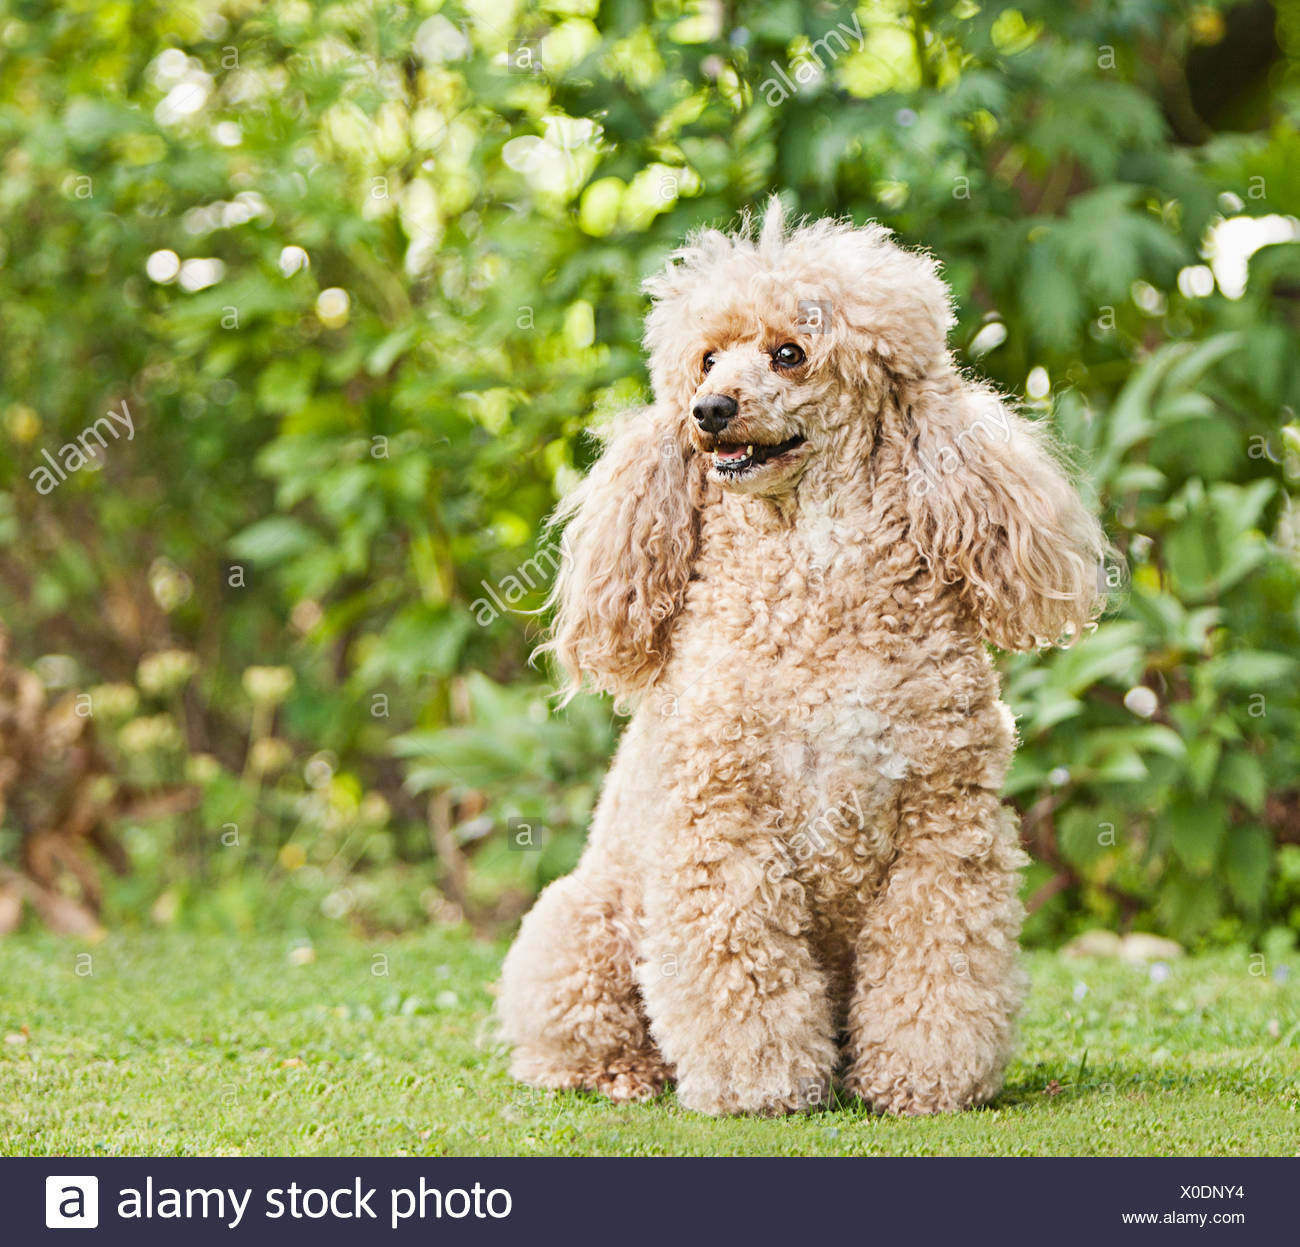 Apricot French Poodle in Garden - Stock Image